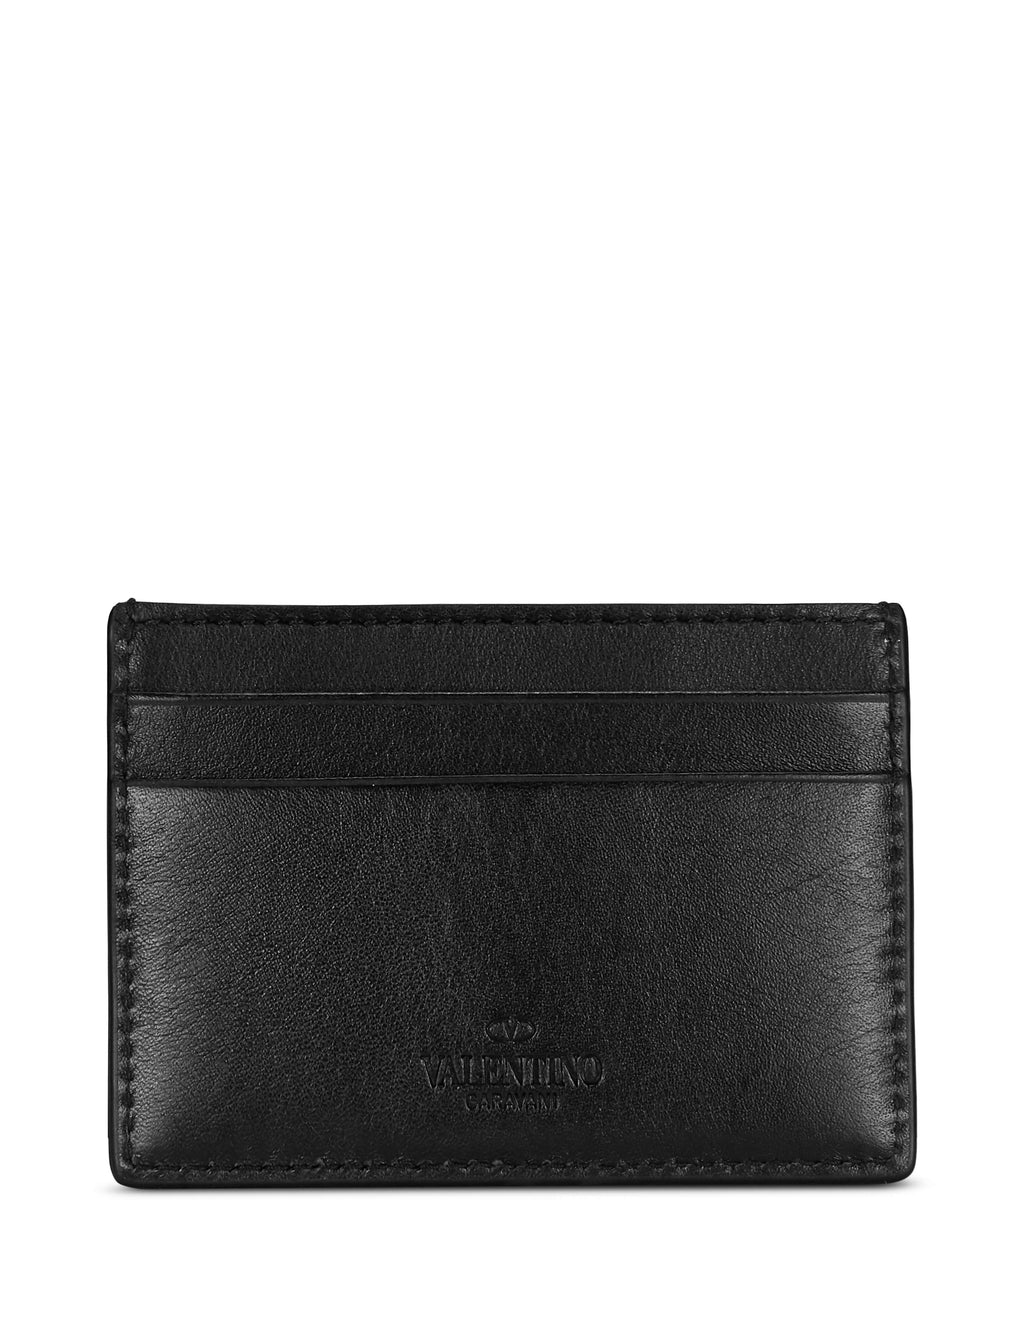 Valentino Men's Giulio Fashion Black Go Logo Leather Card Holder RY0P0655QRZ0NI